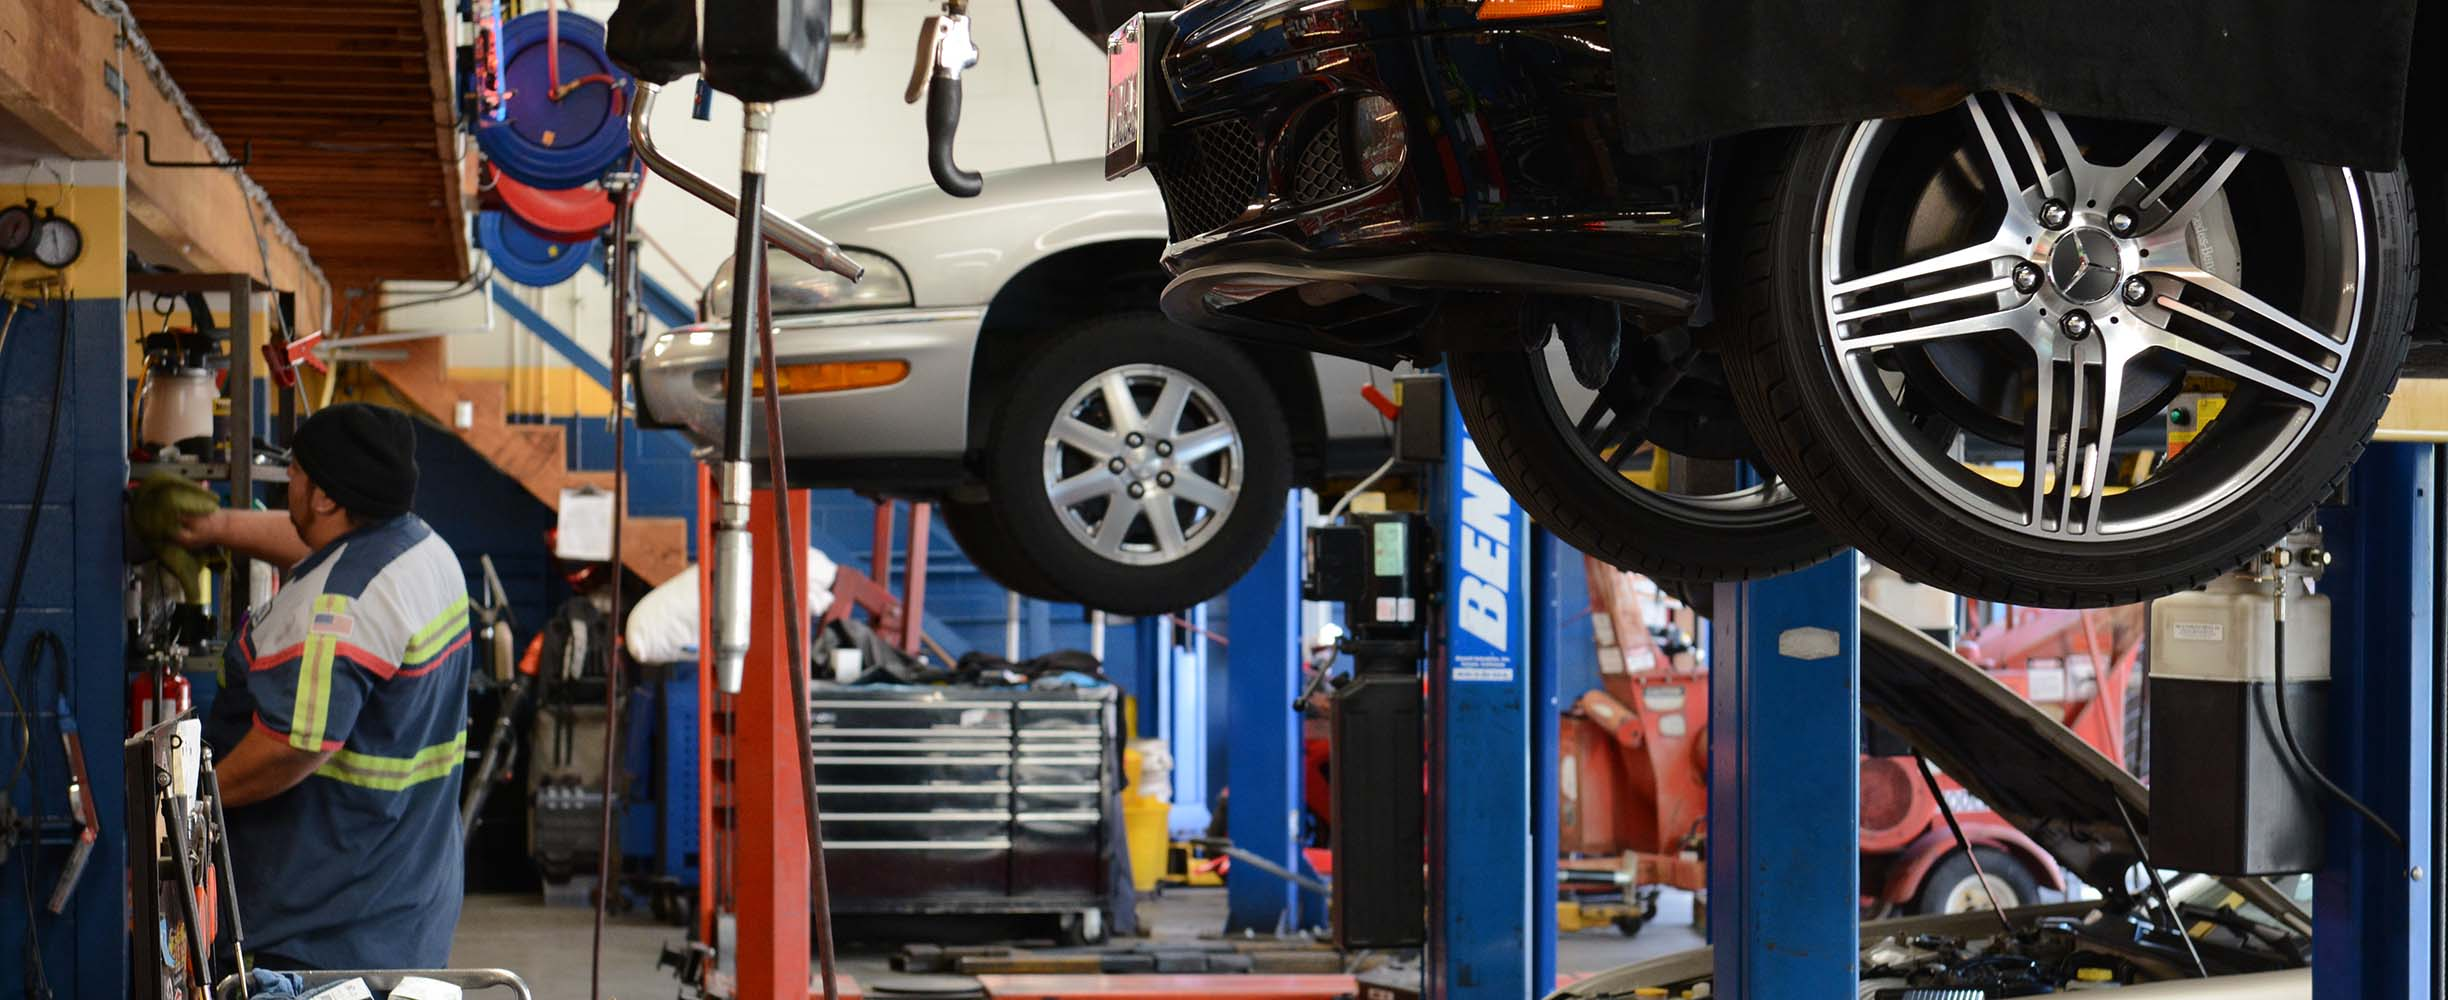 Auto repair shop with over 20 years of experience in Mountain View, California.